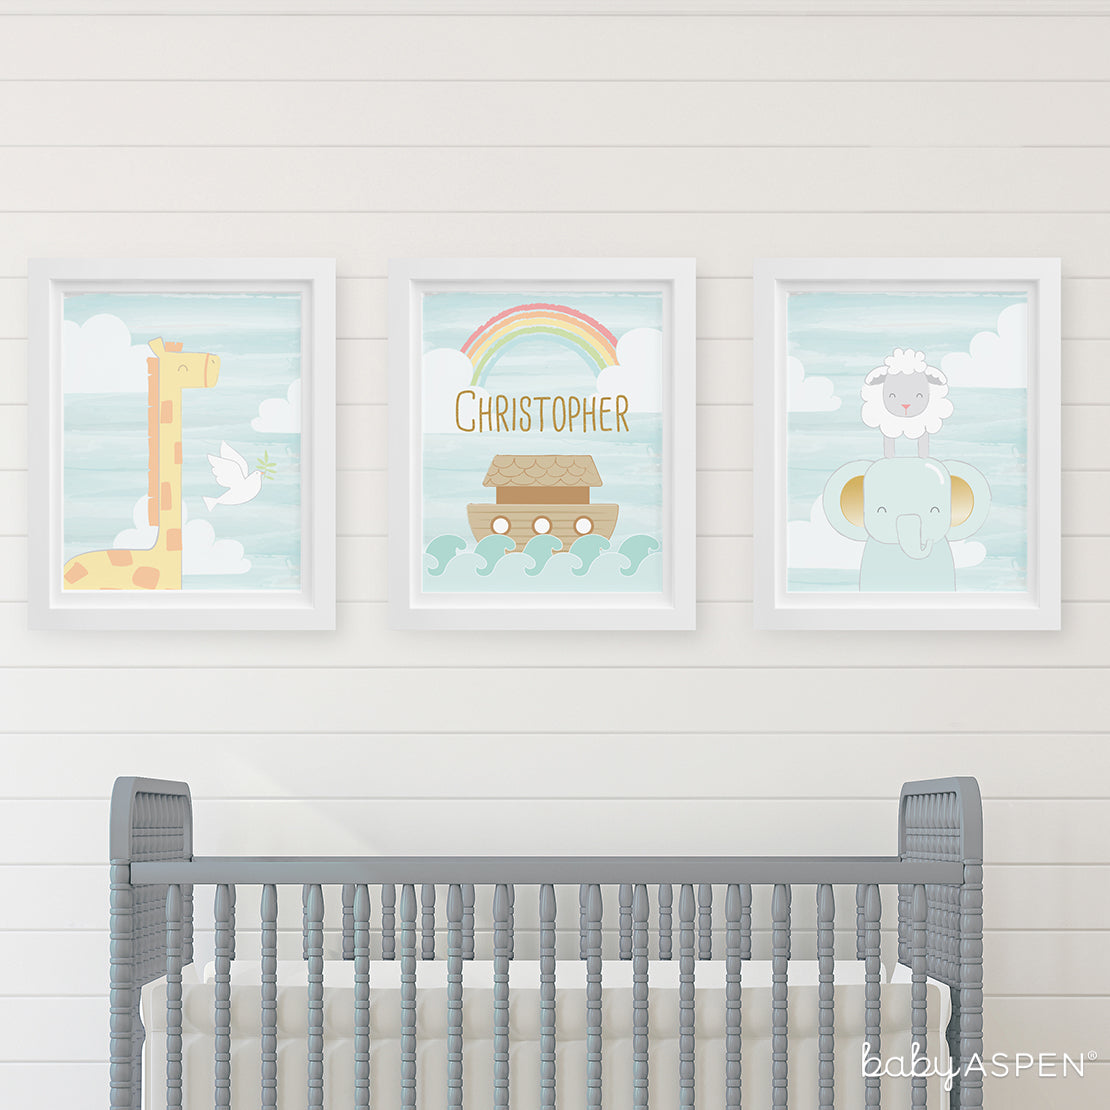 Wonderful Wall Art for Any Baby Nursery